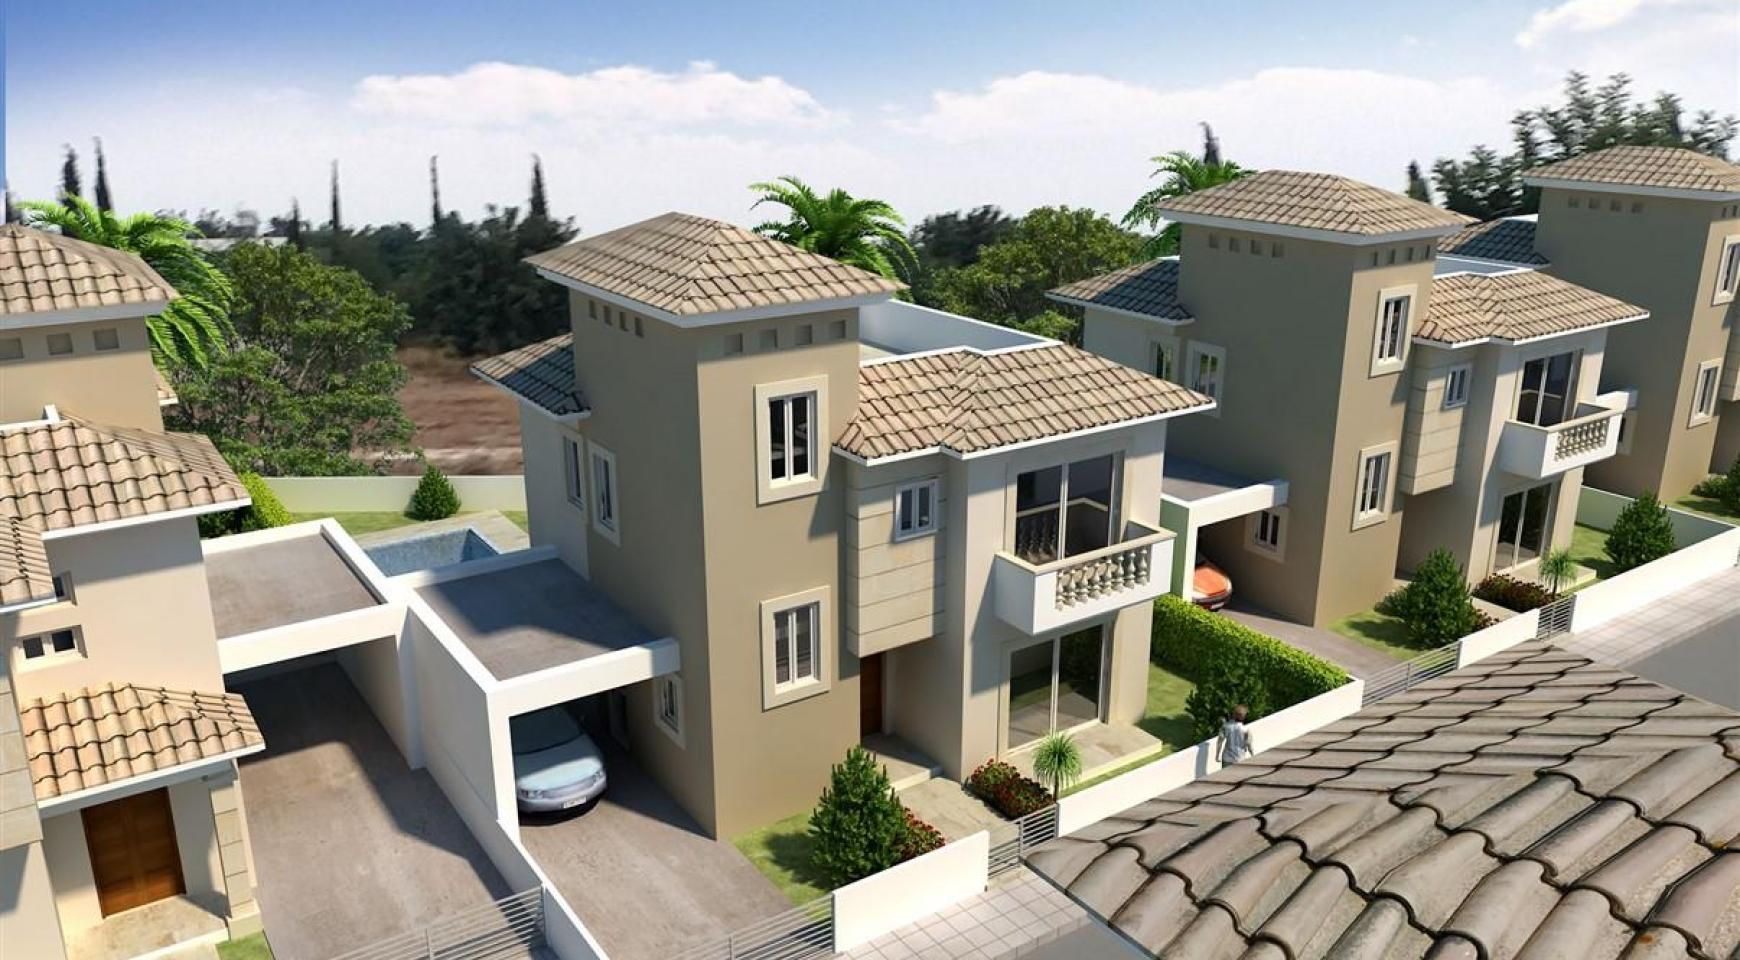 3 Bedroom Villa in a New Project - 4